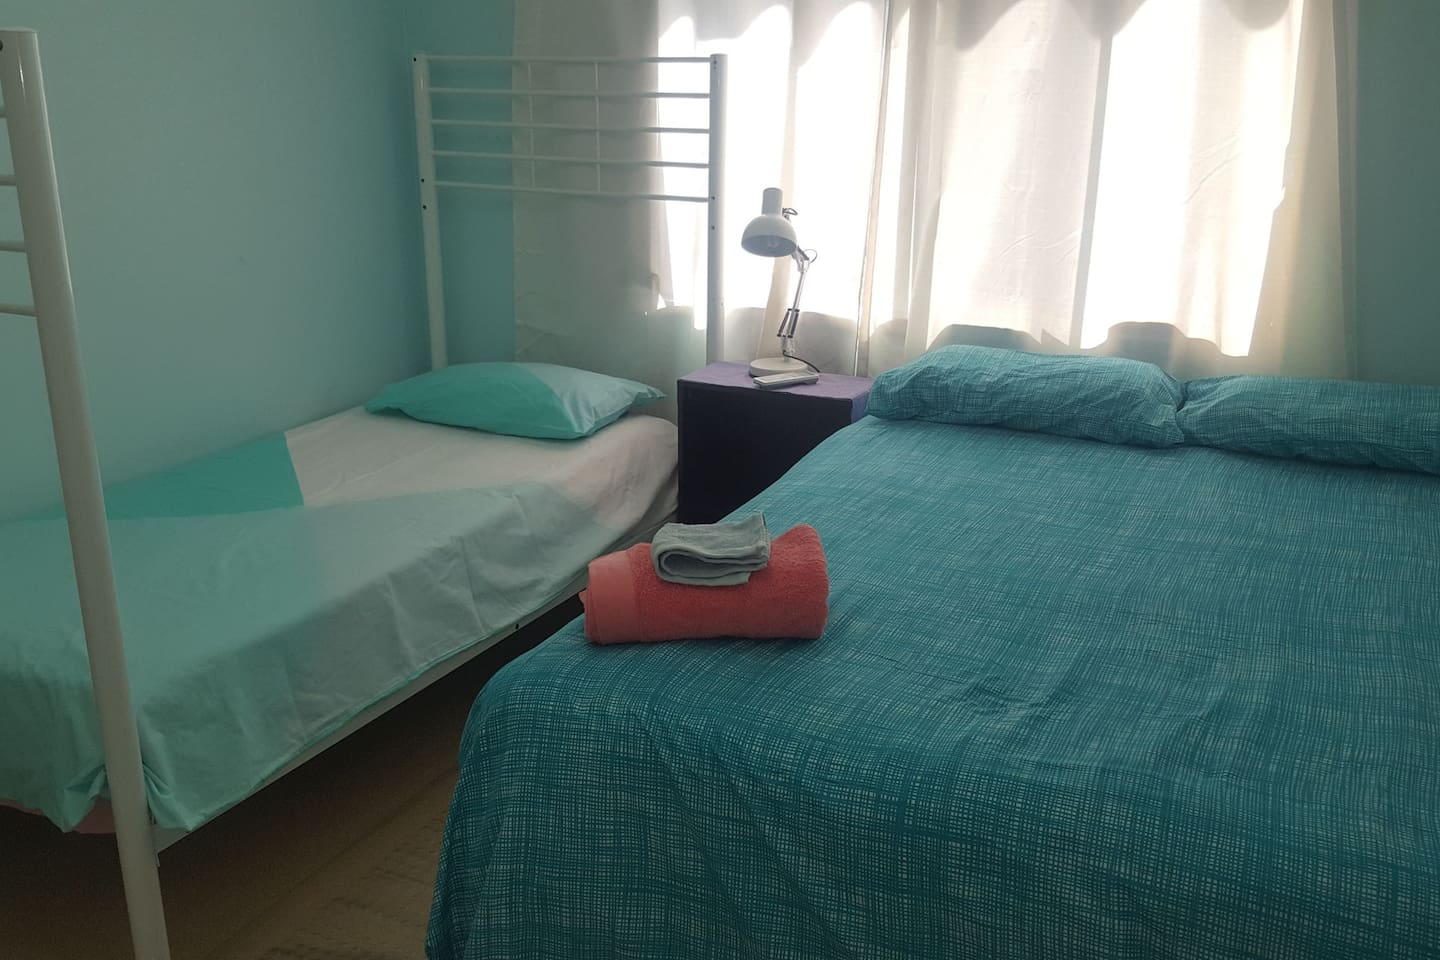 DOUBLE AND SINGLE BED